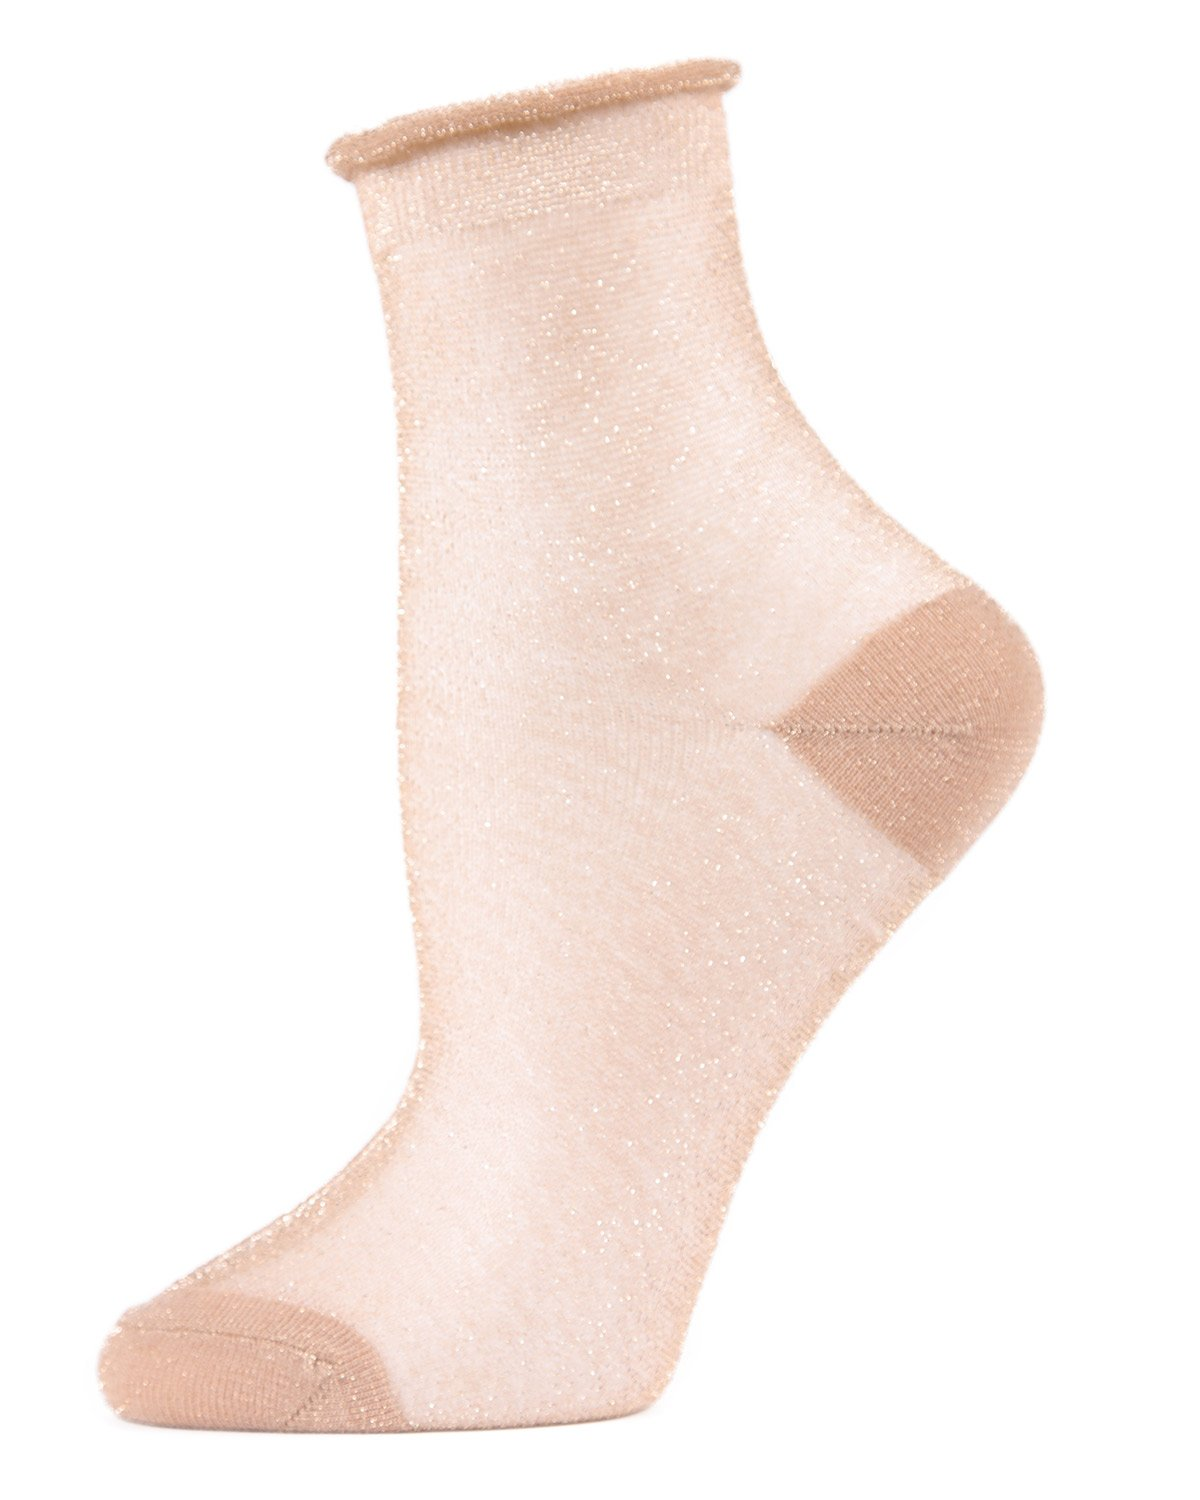 Shimmery Shortie Sheer Socks